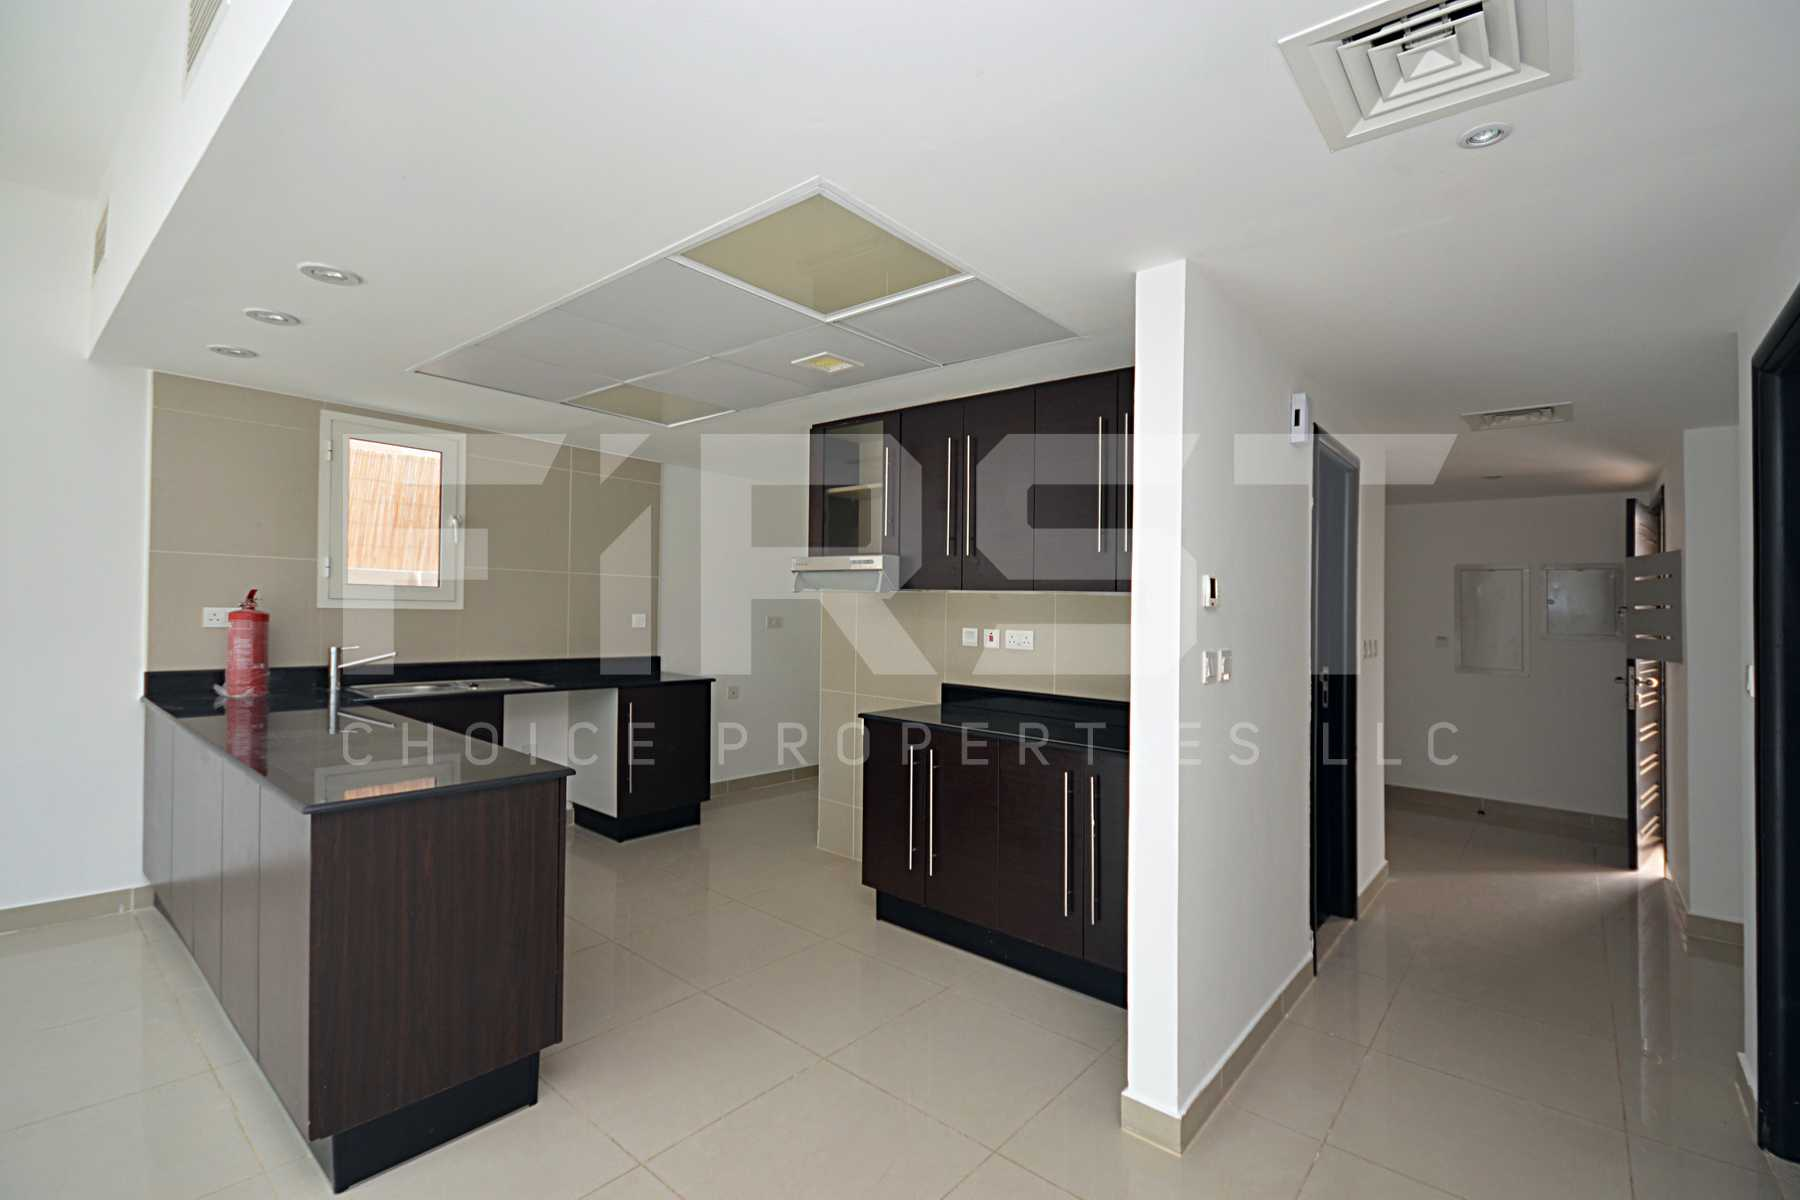 5. Internal Photo of 4 Bedroom Villa in Al Reef Villas Al Reef Abu Dhabi UAE 265.5 sq.m 2858 sq.ft (8).jpg